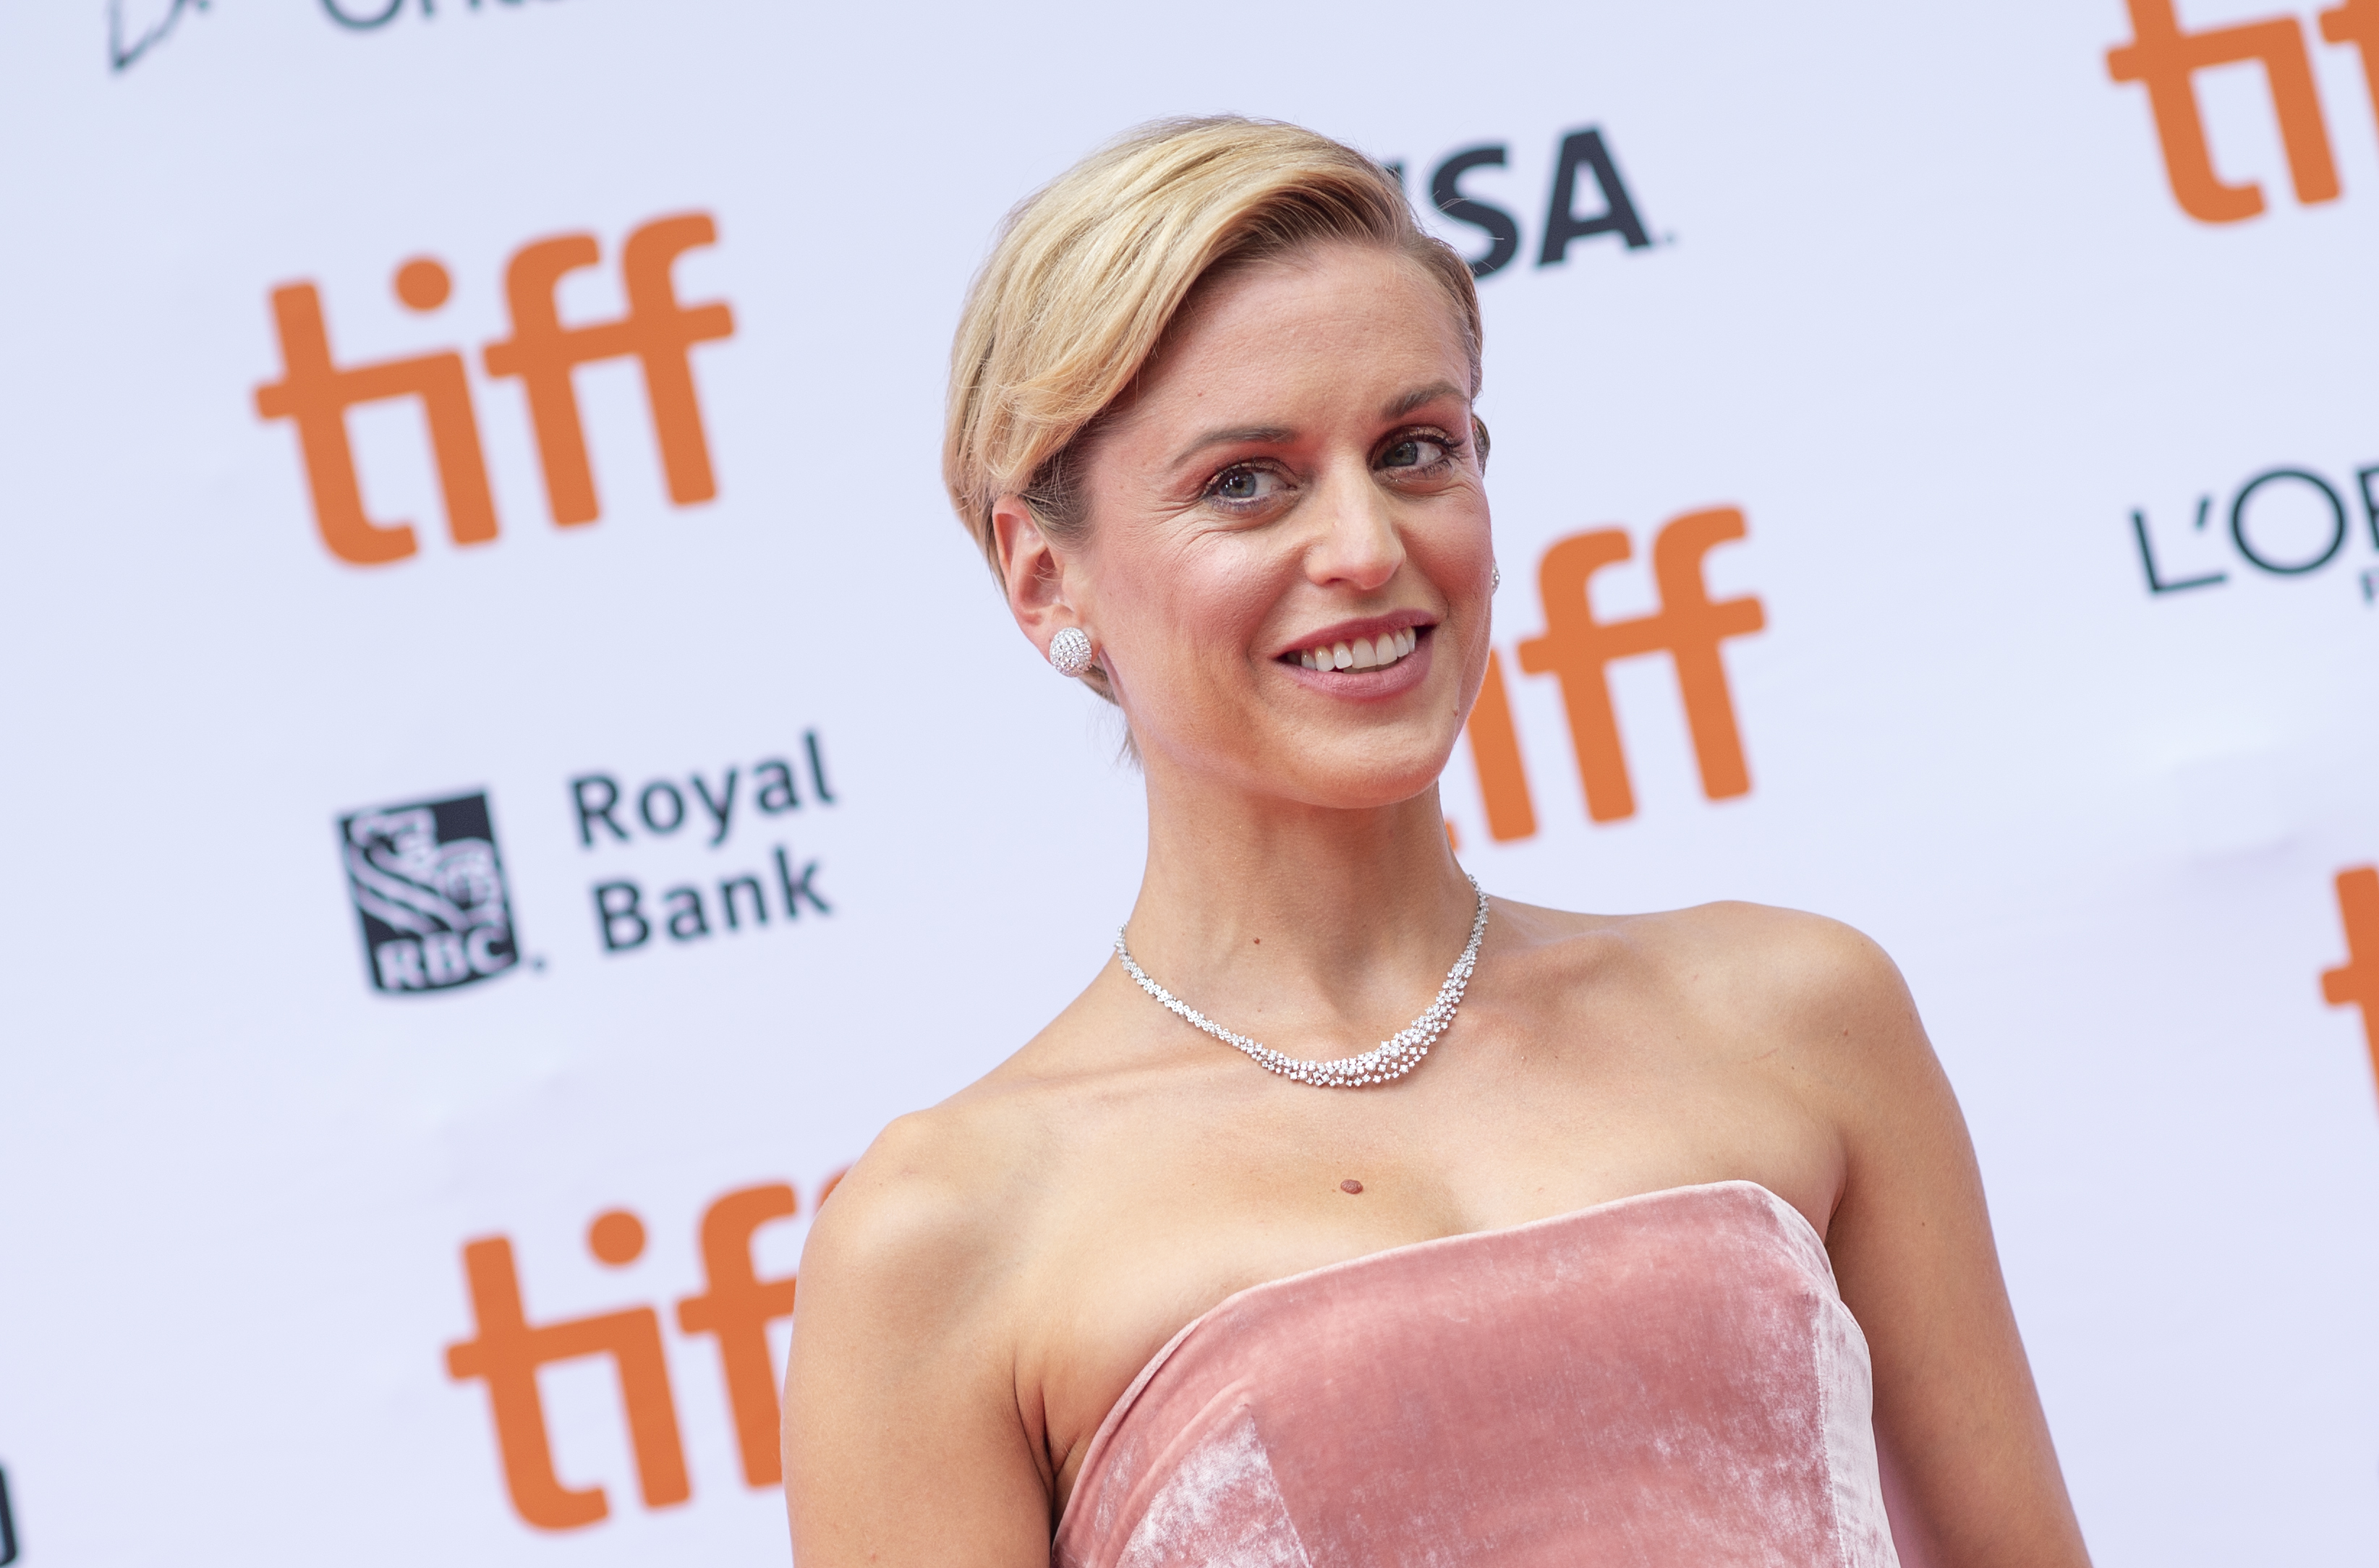 Irish actress Denise Gough attends the Premiere of  Colette  during the Toronto International Film Festival, on September 11, 2018, in Toronto, Ontario, Canada.